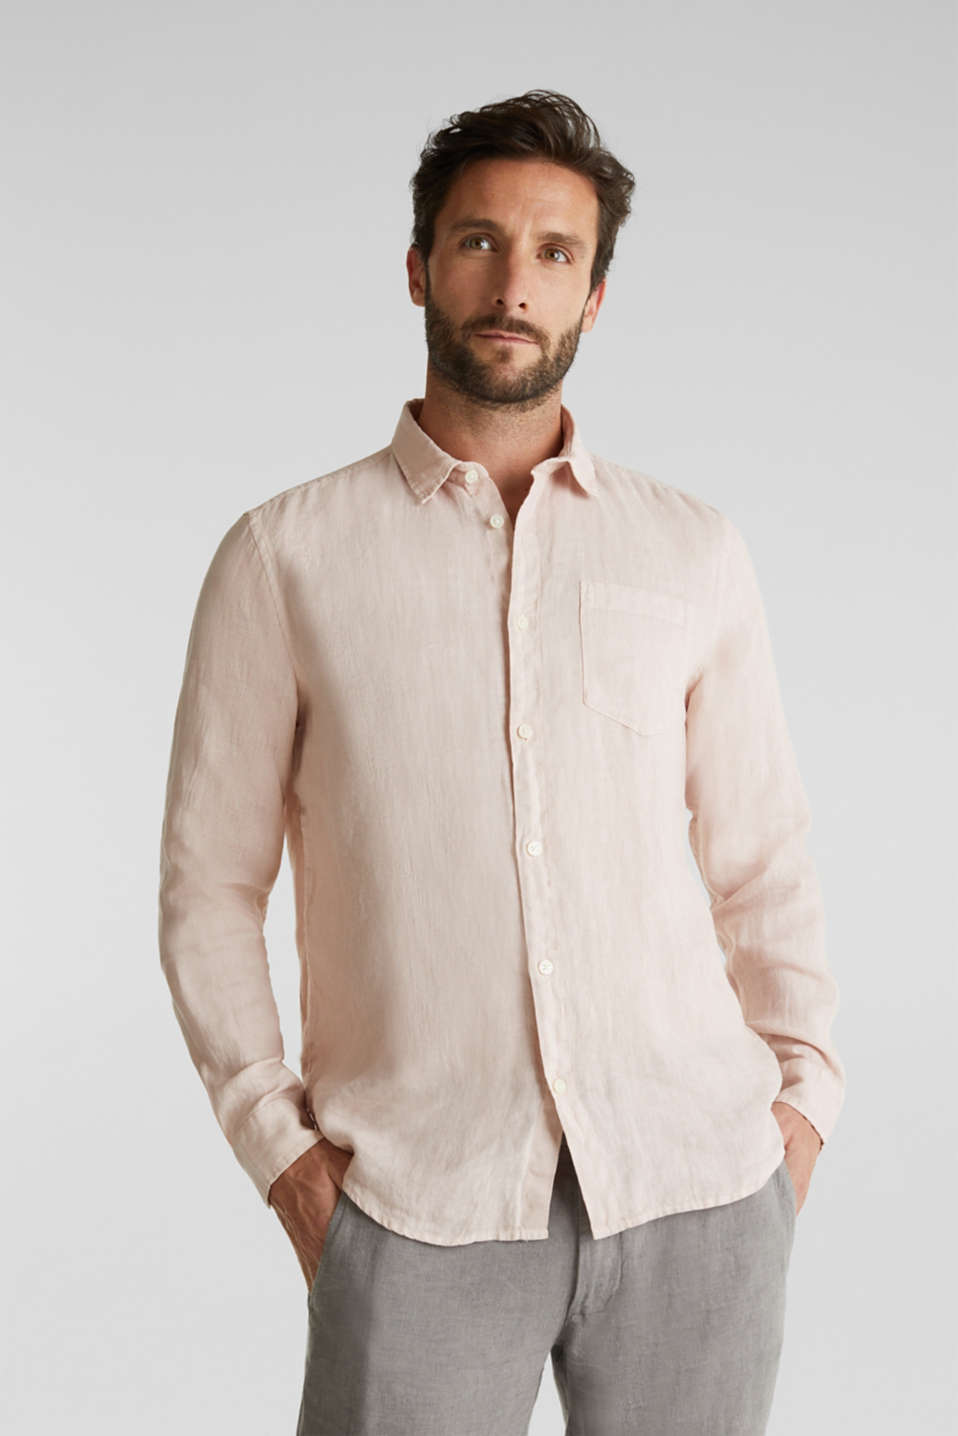 Esprit - EarthColors®: Shirt made of 100% linen